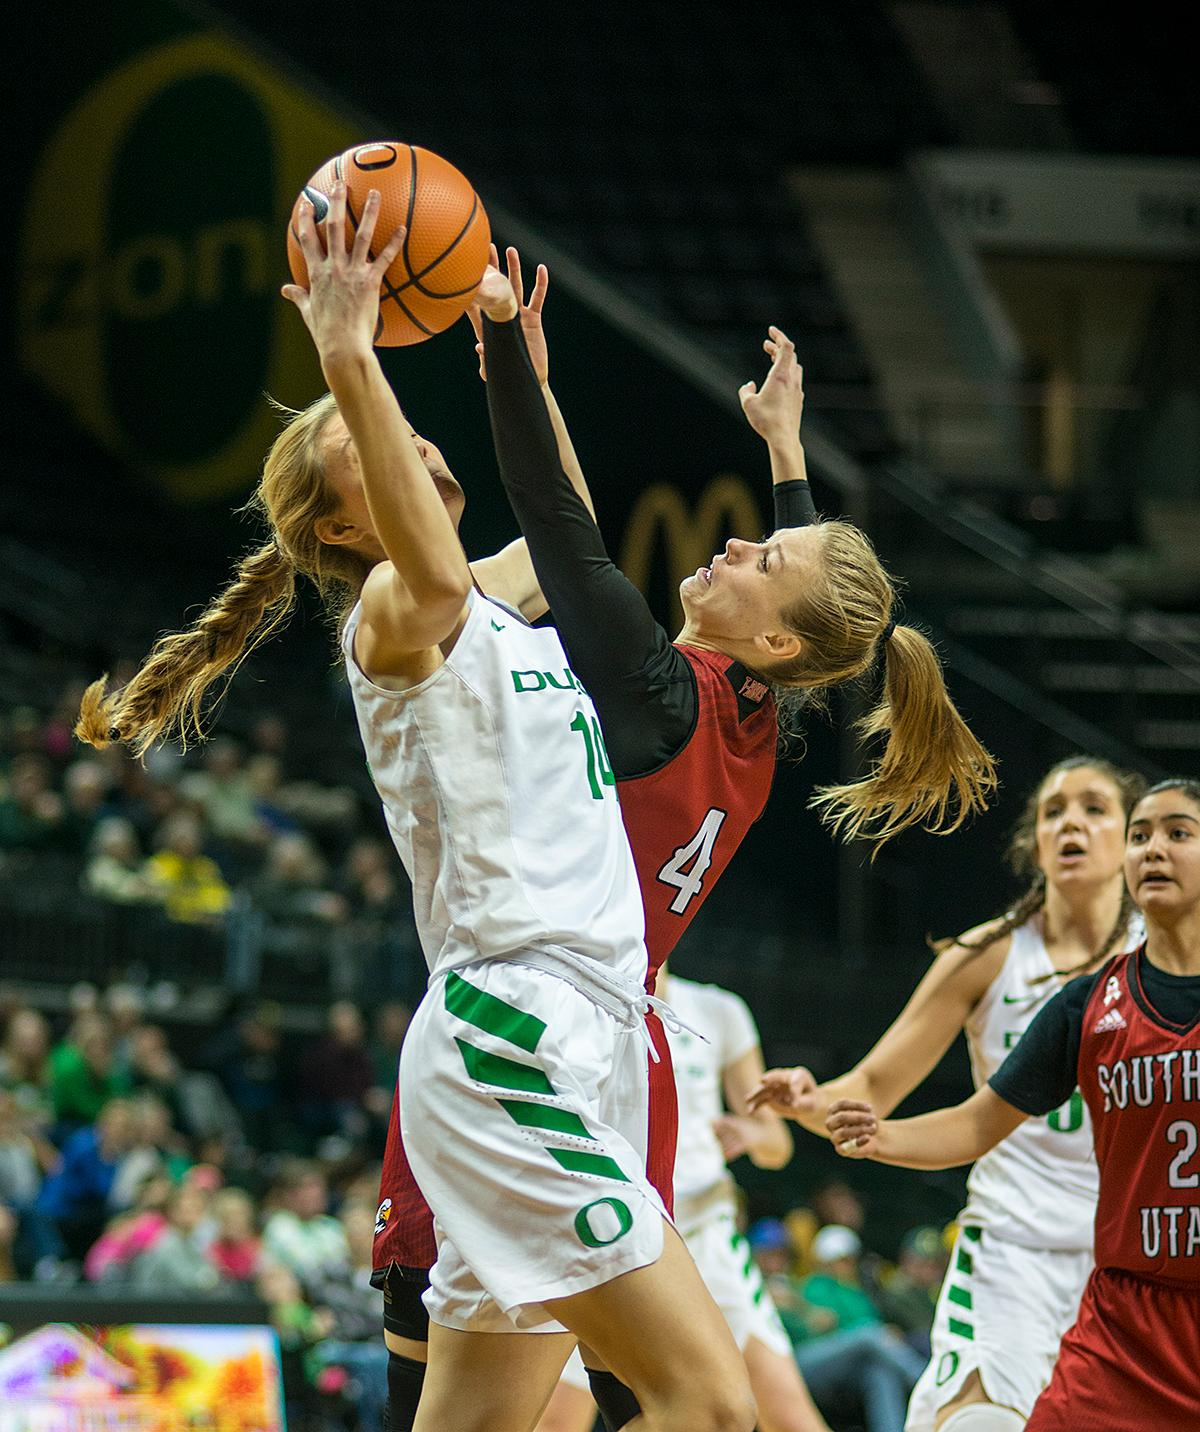 Oregon Ducks Lydia Giomi (#14) attempts to keep control of the ball. The University of Oregon Ducks women basketball team defeated the Southern Utah Thunderbirds 98-38 in Matthew Knight Arena Saturday afternoon. The Ducks had four players in double-digits: Ruthy Hebard with 13; Mallory McGwire with 10; Lexi Bando with 17 which included four three-pointers; and Sabrina Ionescu with 16 points. The Ducks overwhelmed the Thunderbirds, shooting 50% in field goals to South Utah's 26.8%, 53.8% in three-pointers to 12.5%, and 85.7% in free throws to 50%. The Ducks, with an overall record of 8-1, and coming into this game ranked 9th, will play their next home game against Ole Miss on December 17. Photo by Rhianna Gelhart, Oregon News Lab